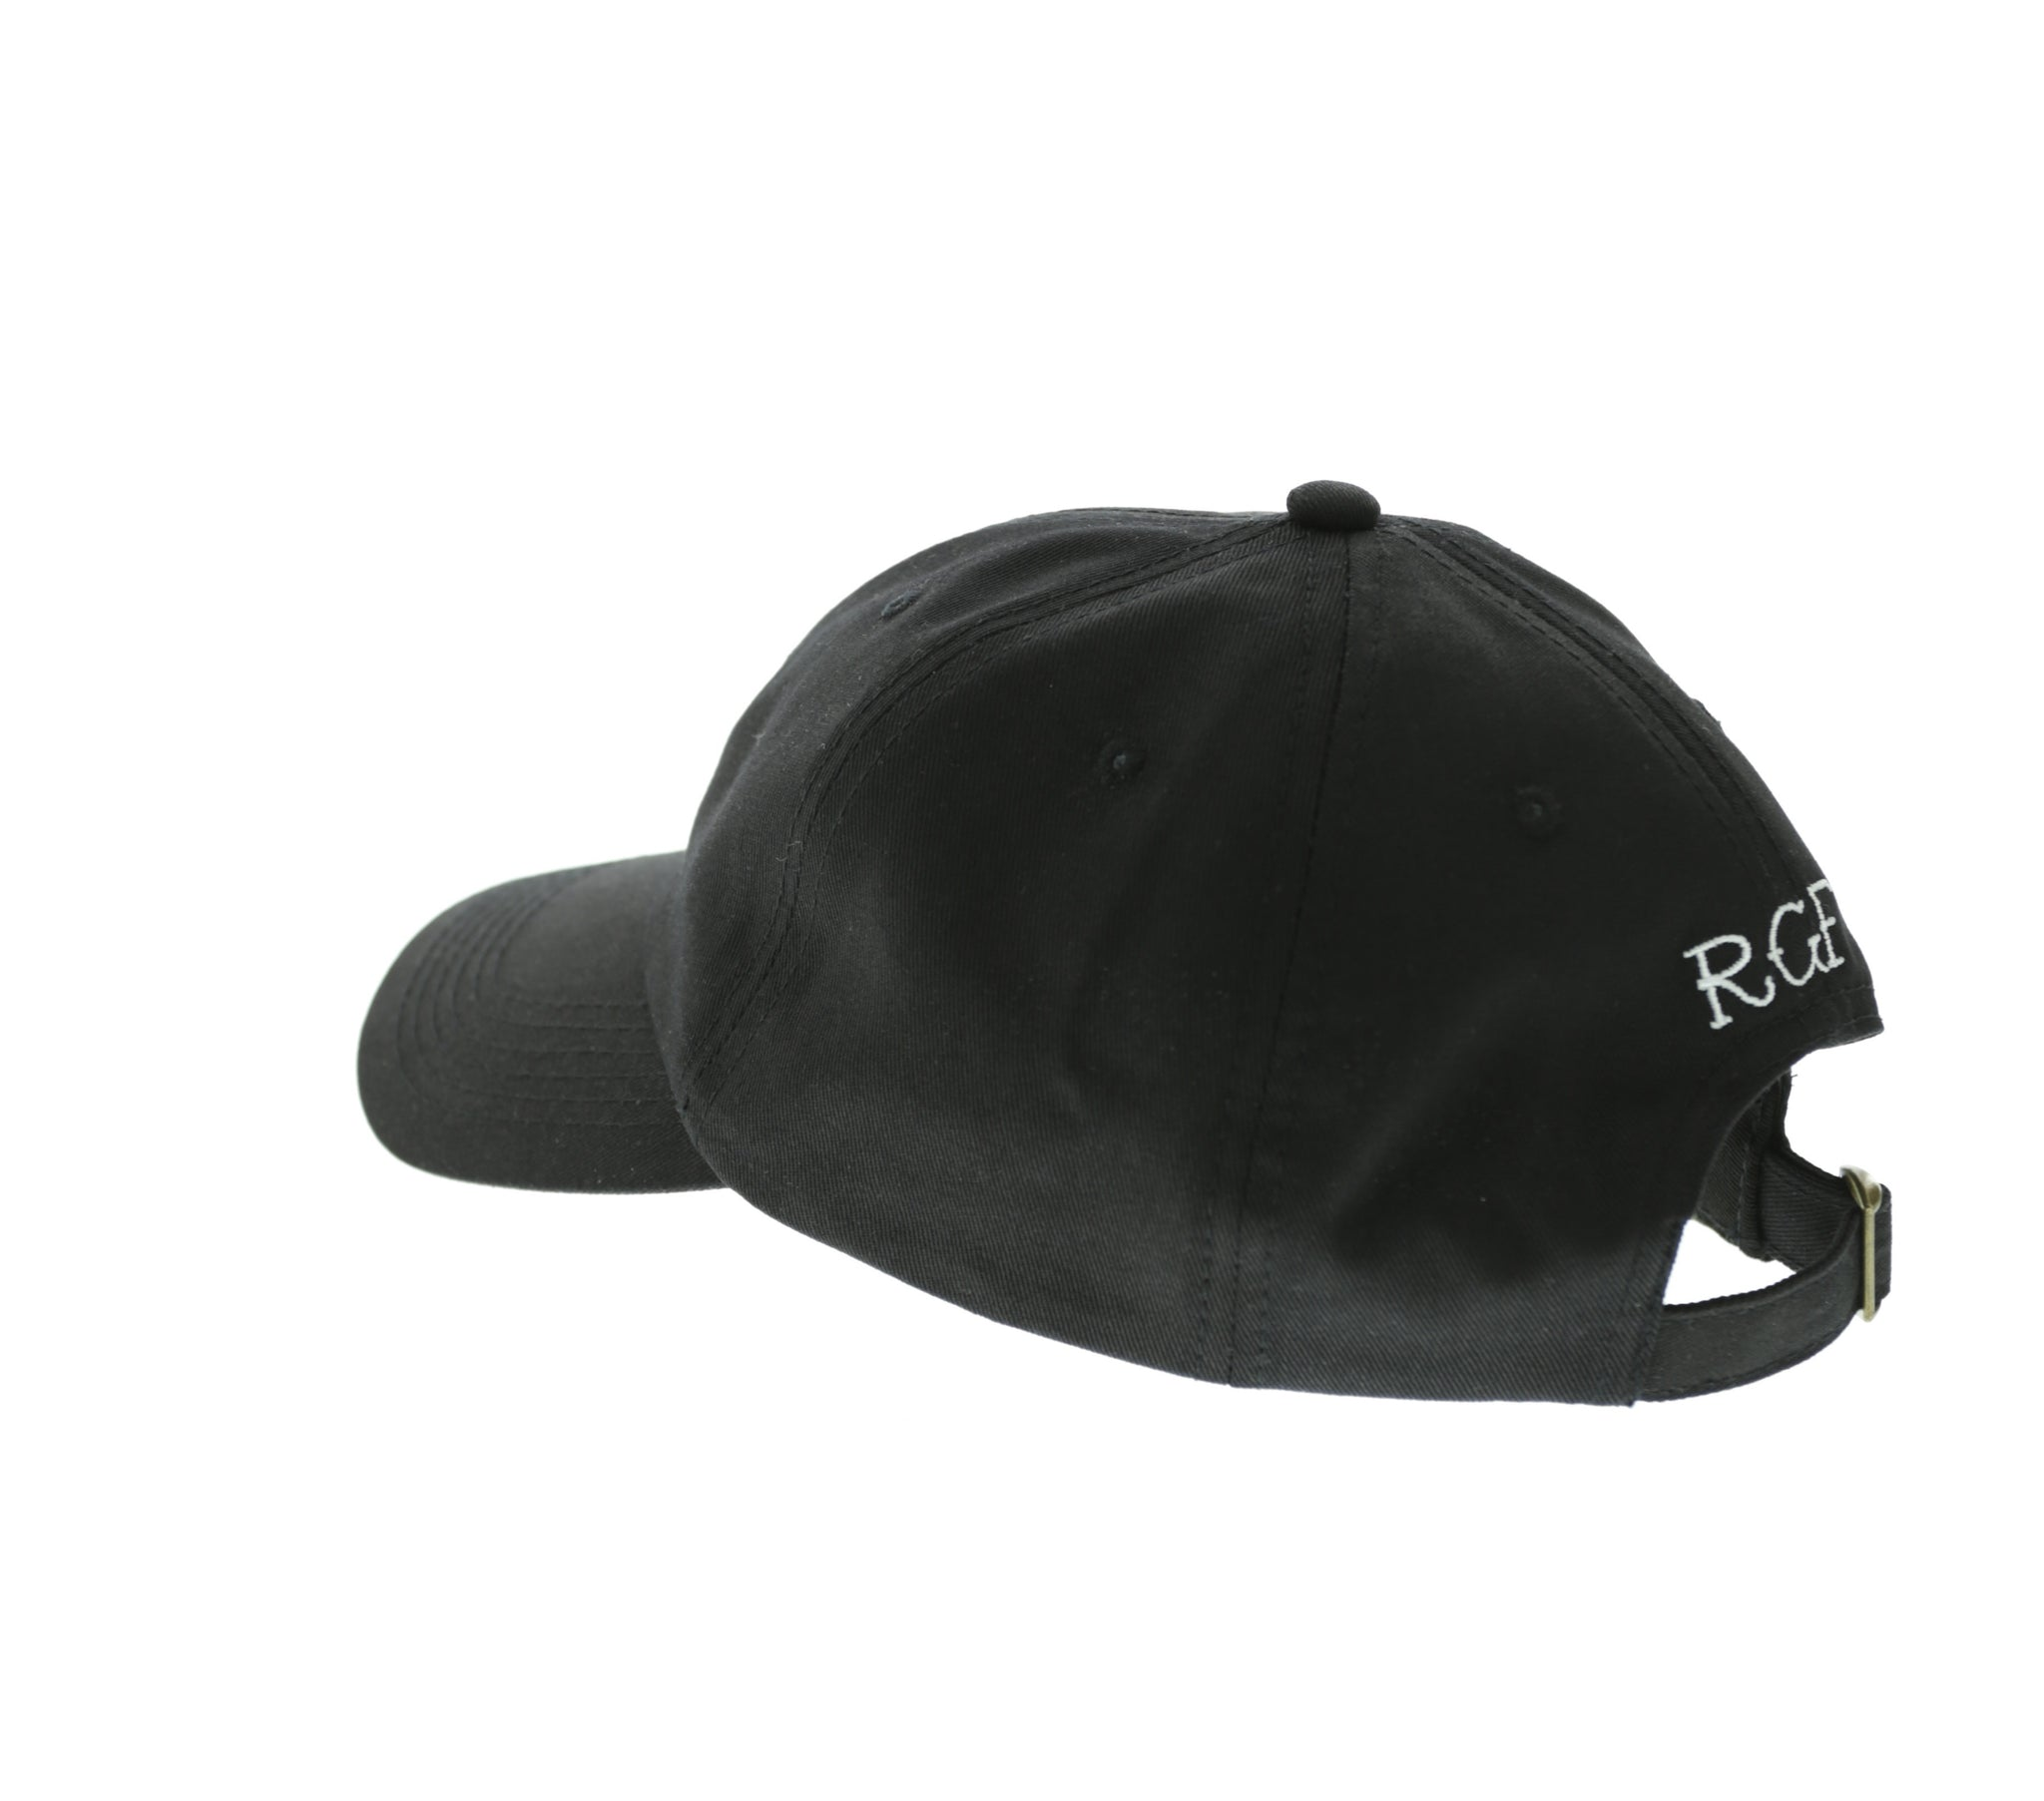 HELLO SAILER STRAPBACK - Black